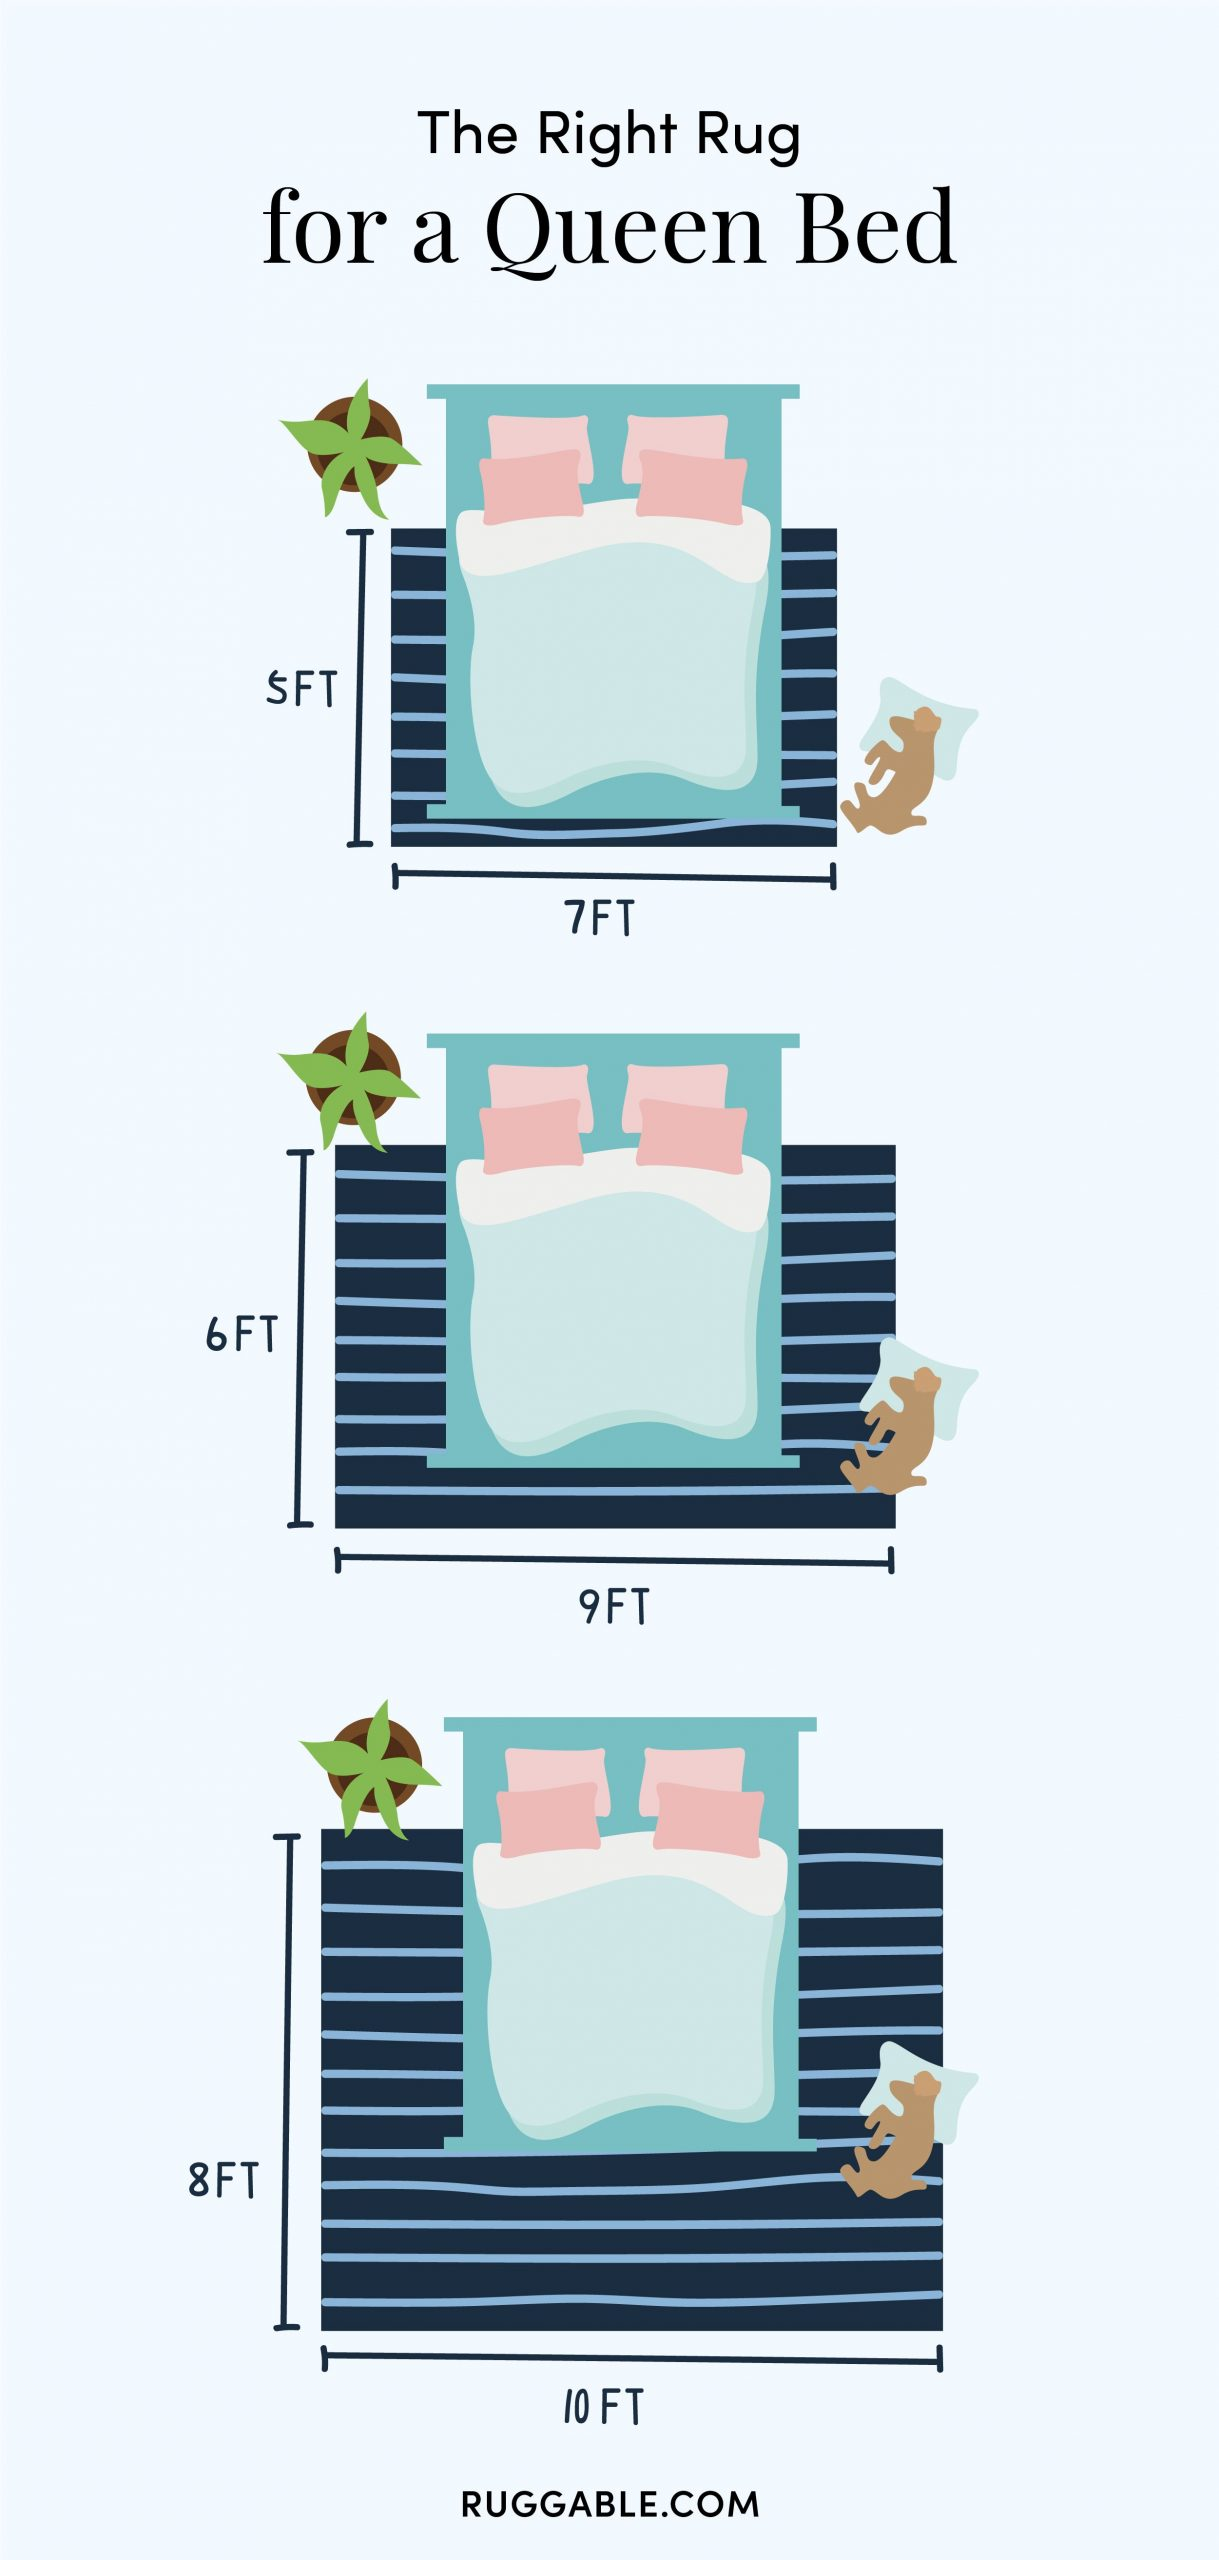 Find the right rug size for your Queen bed